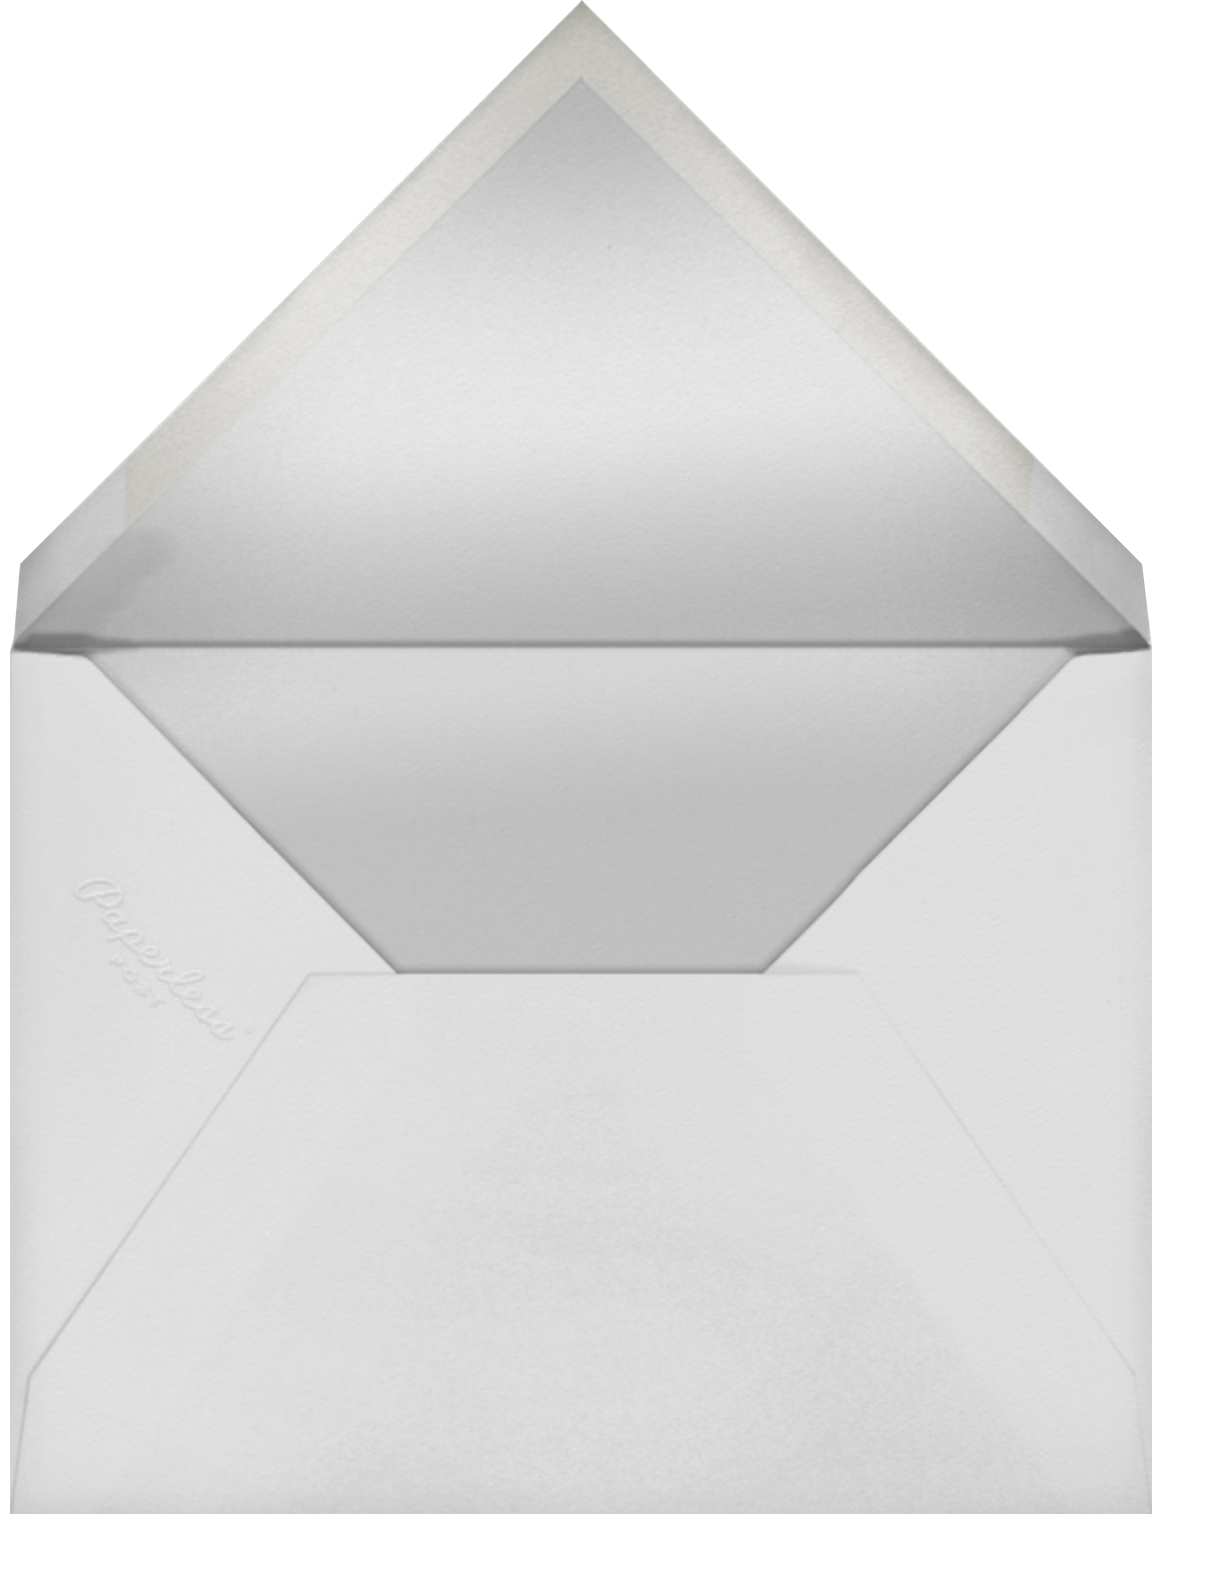 Custom Thin Foil (Tall) - Rose Gold - Paperless Post - Graduation party - envelope back